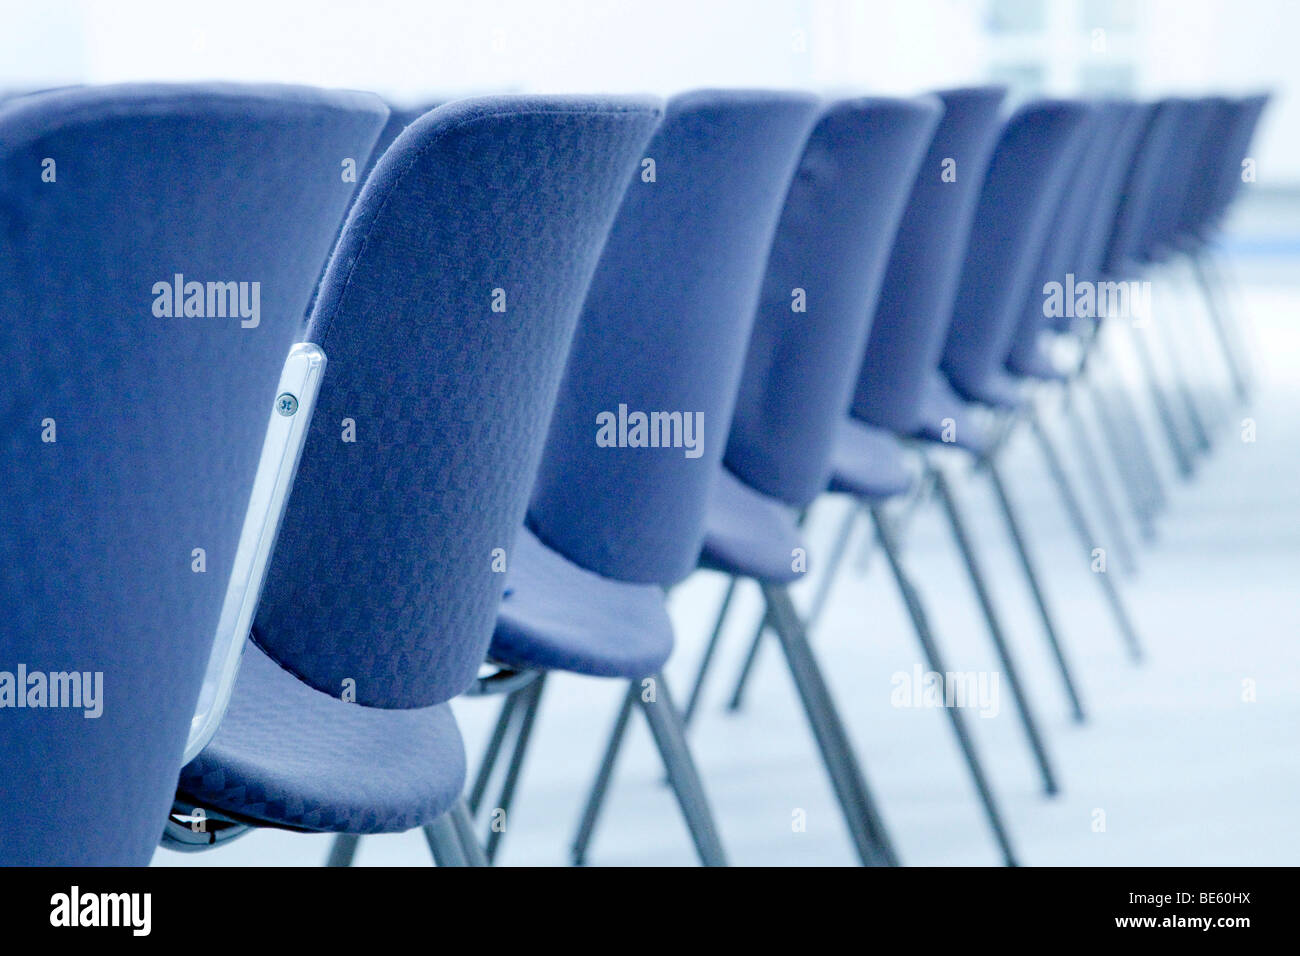 Row of chairs Stock Photo